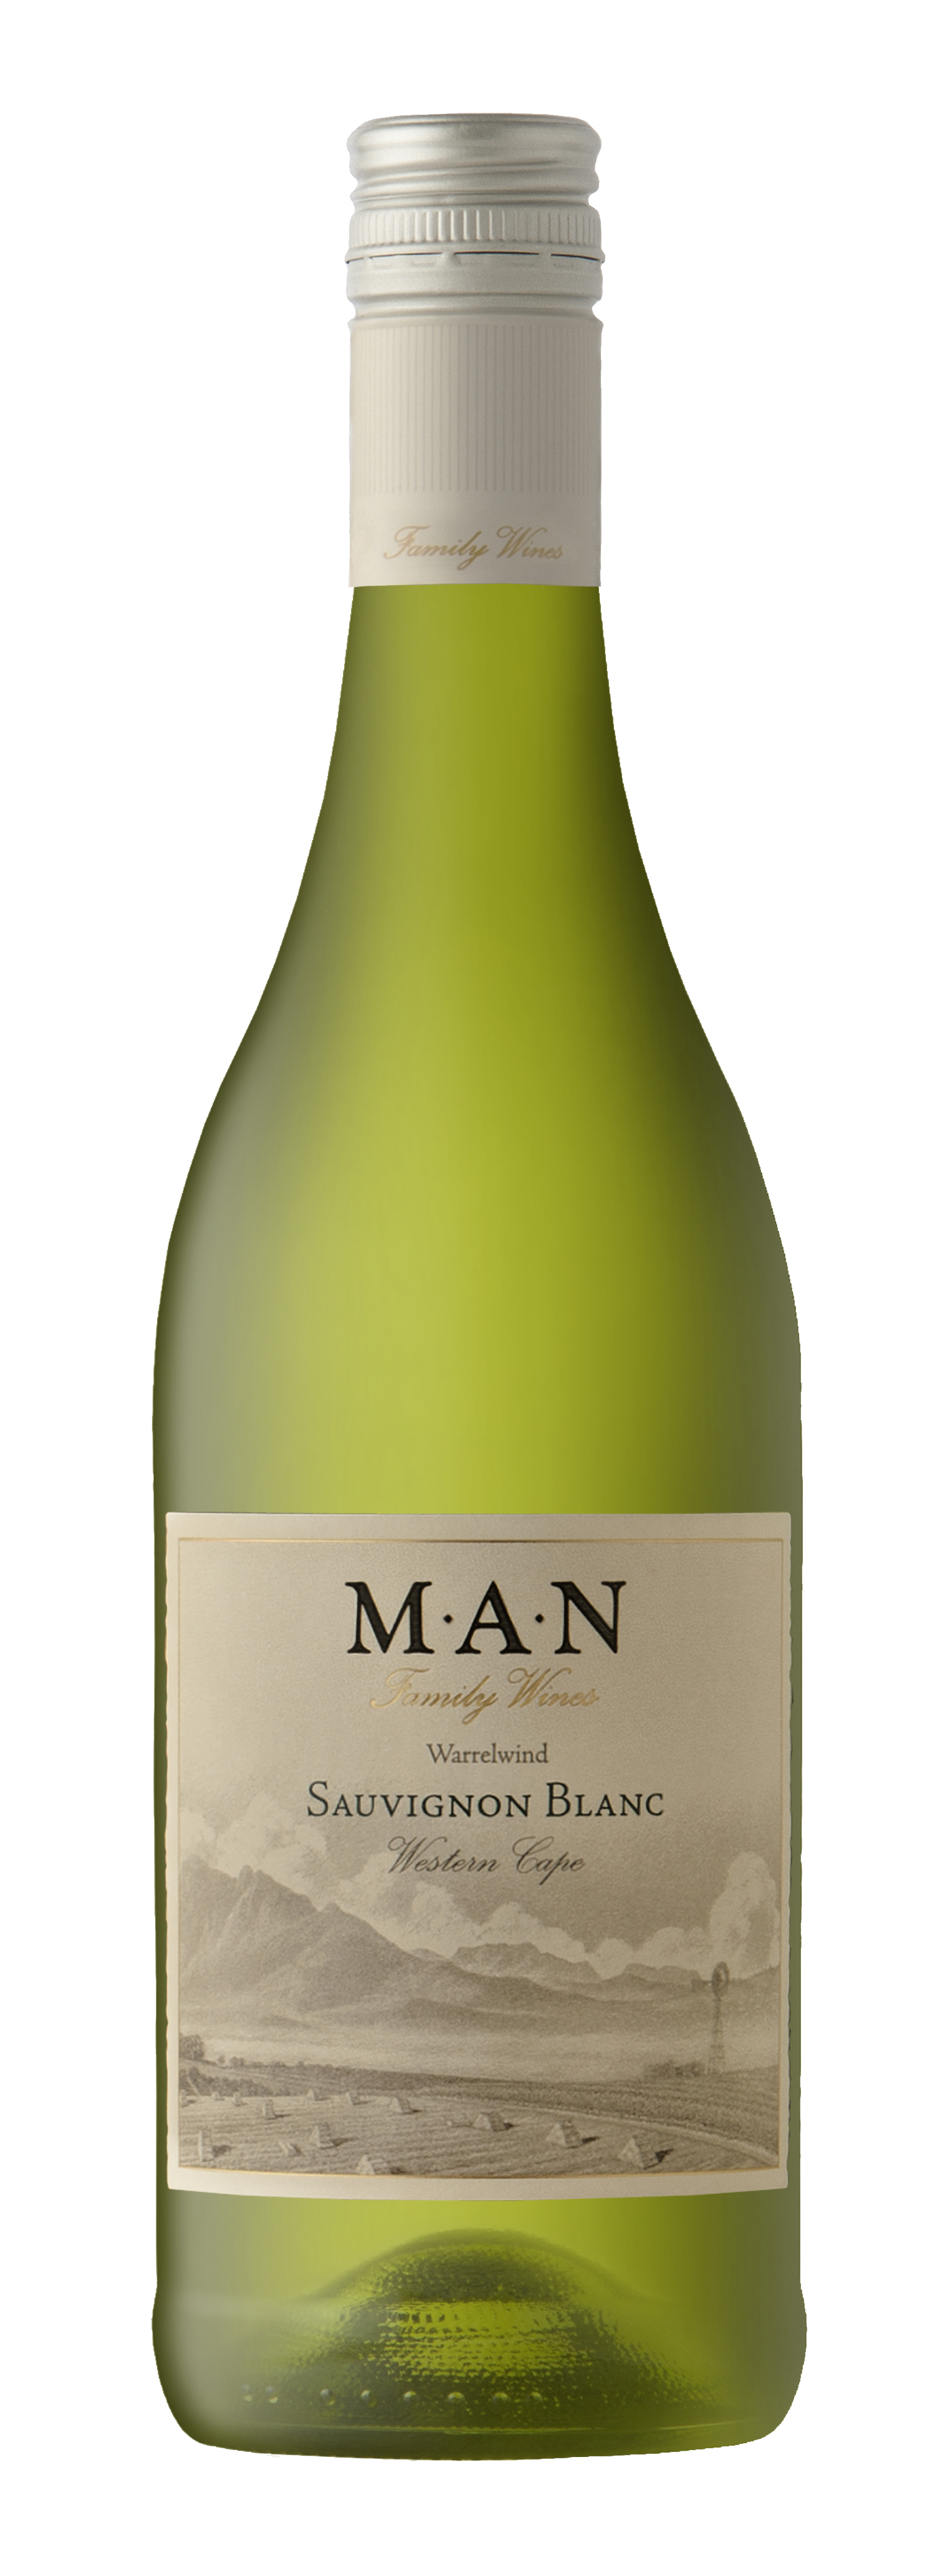 MAN Family Wines Sauvignon Blanc Bottle (NEW).jpg